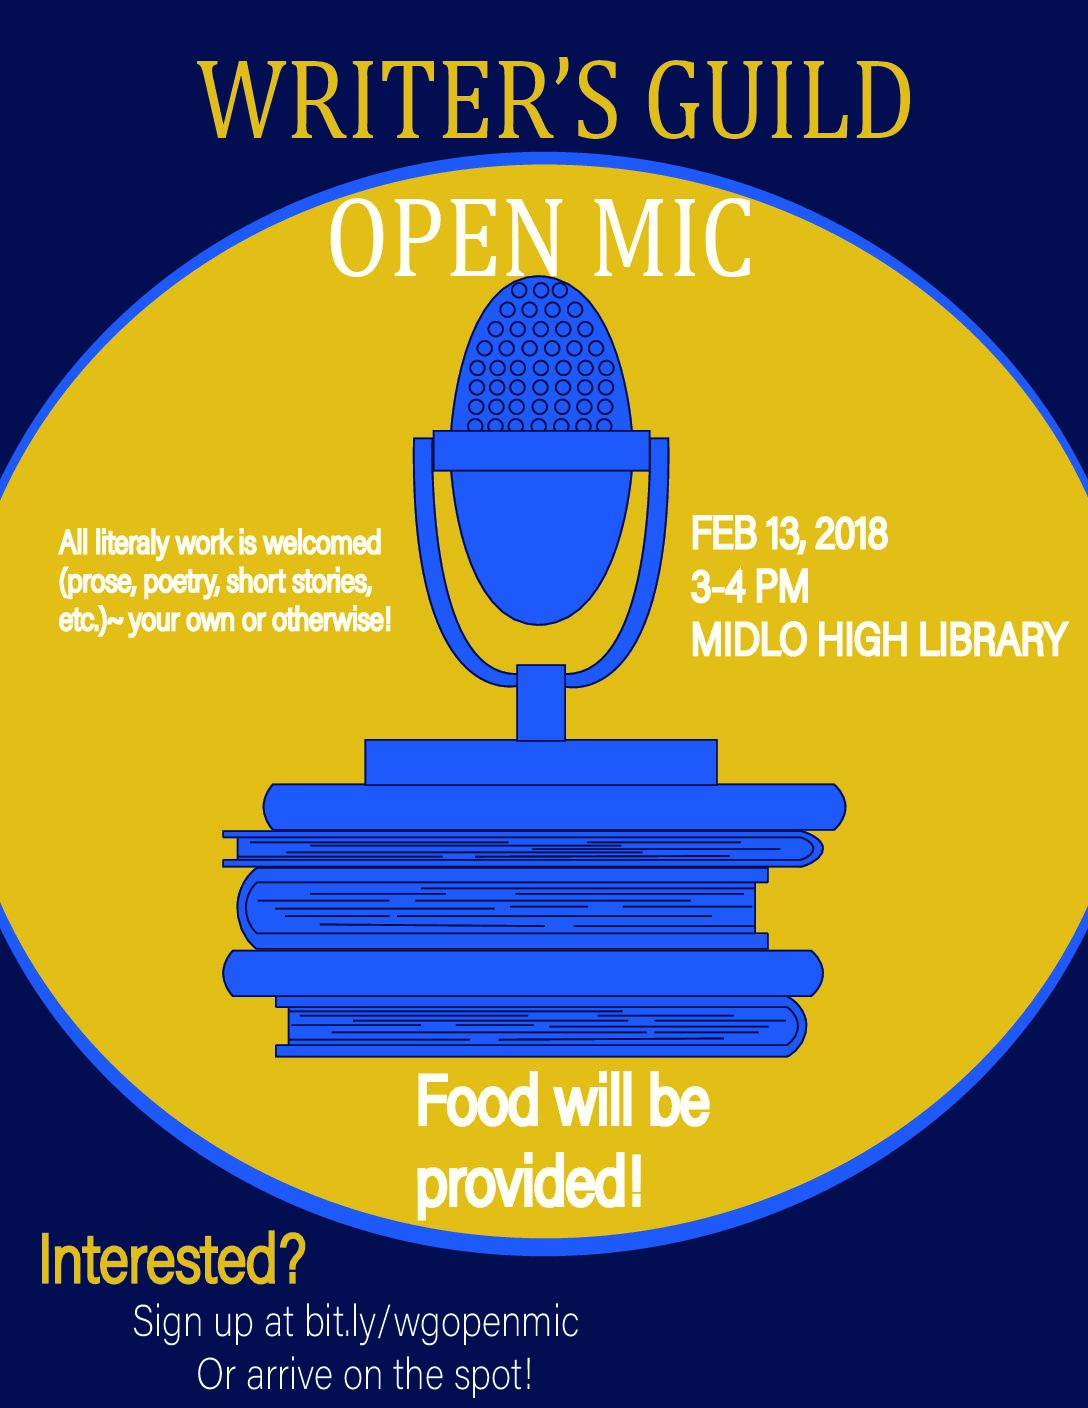 Come Perform at the Writer's Guild Open Mic!